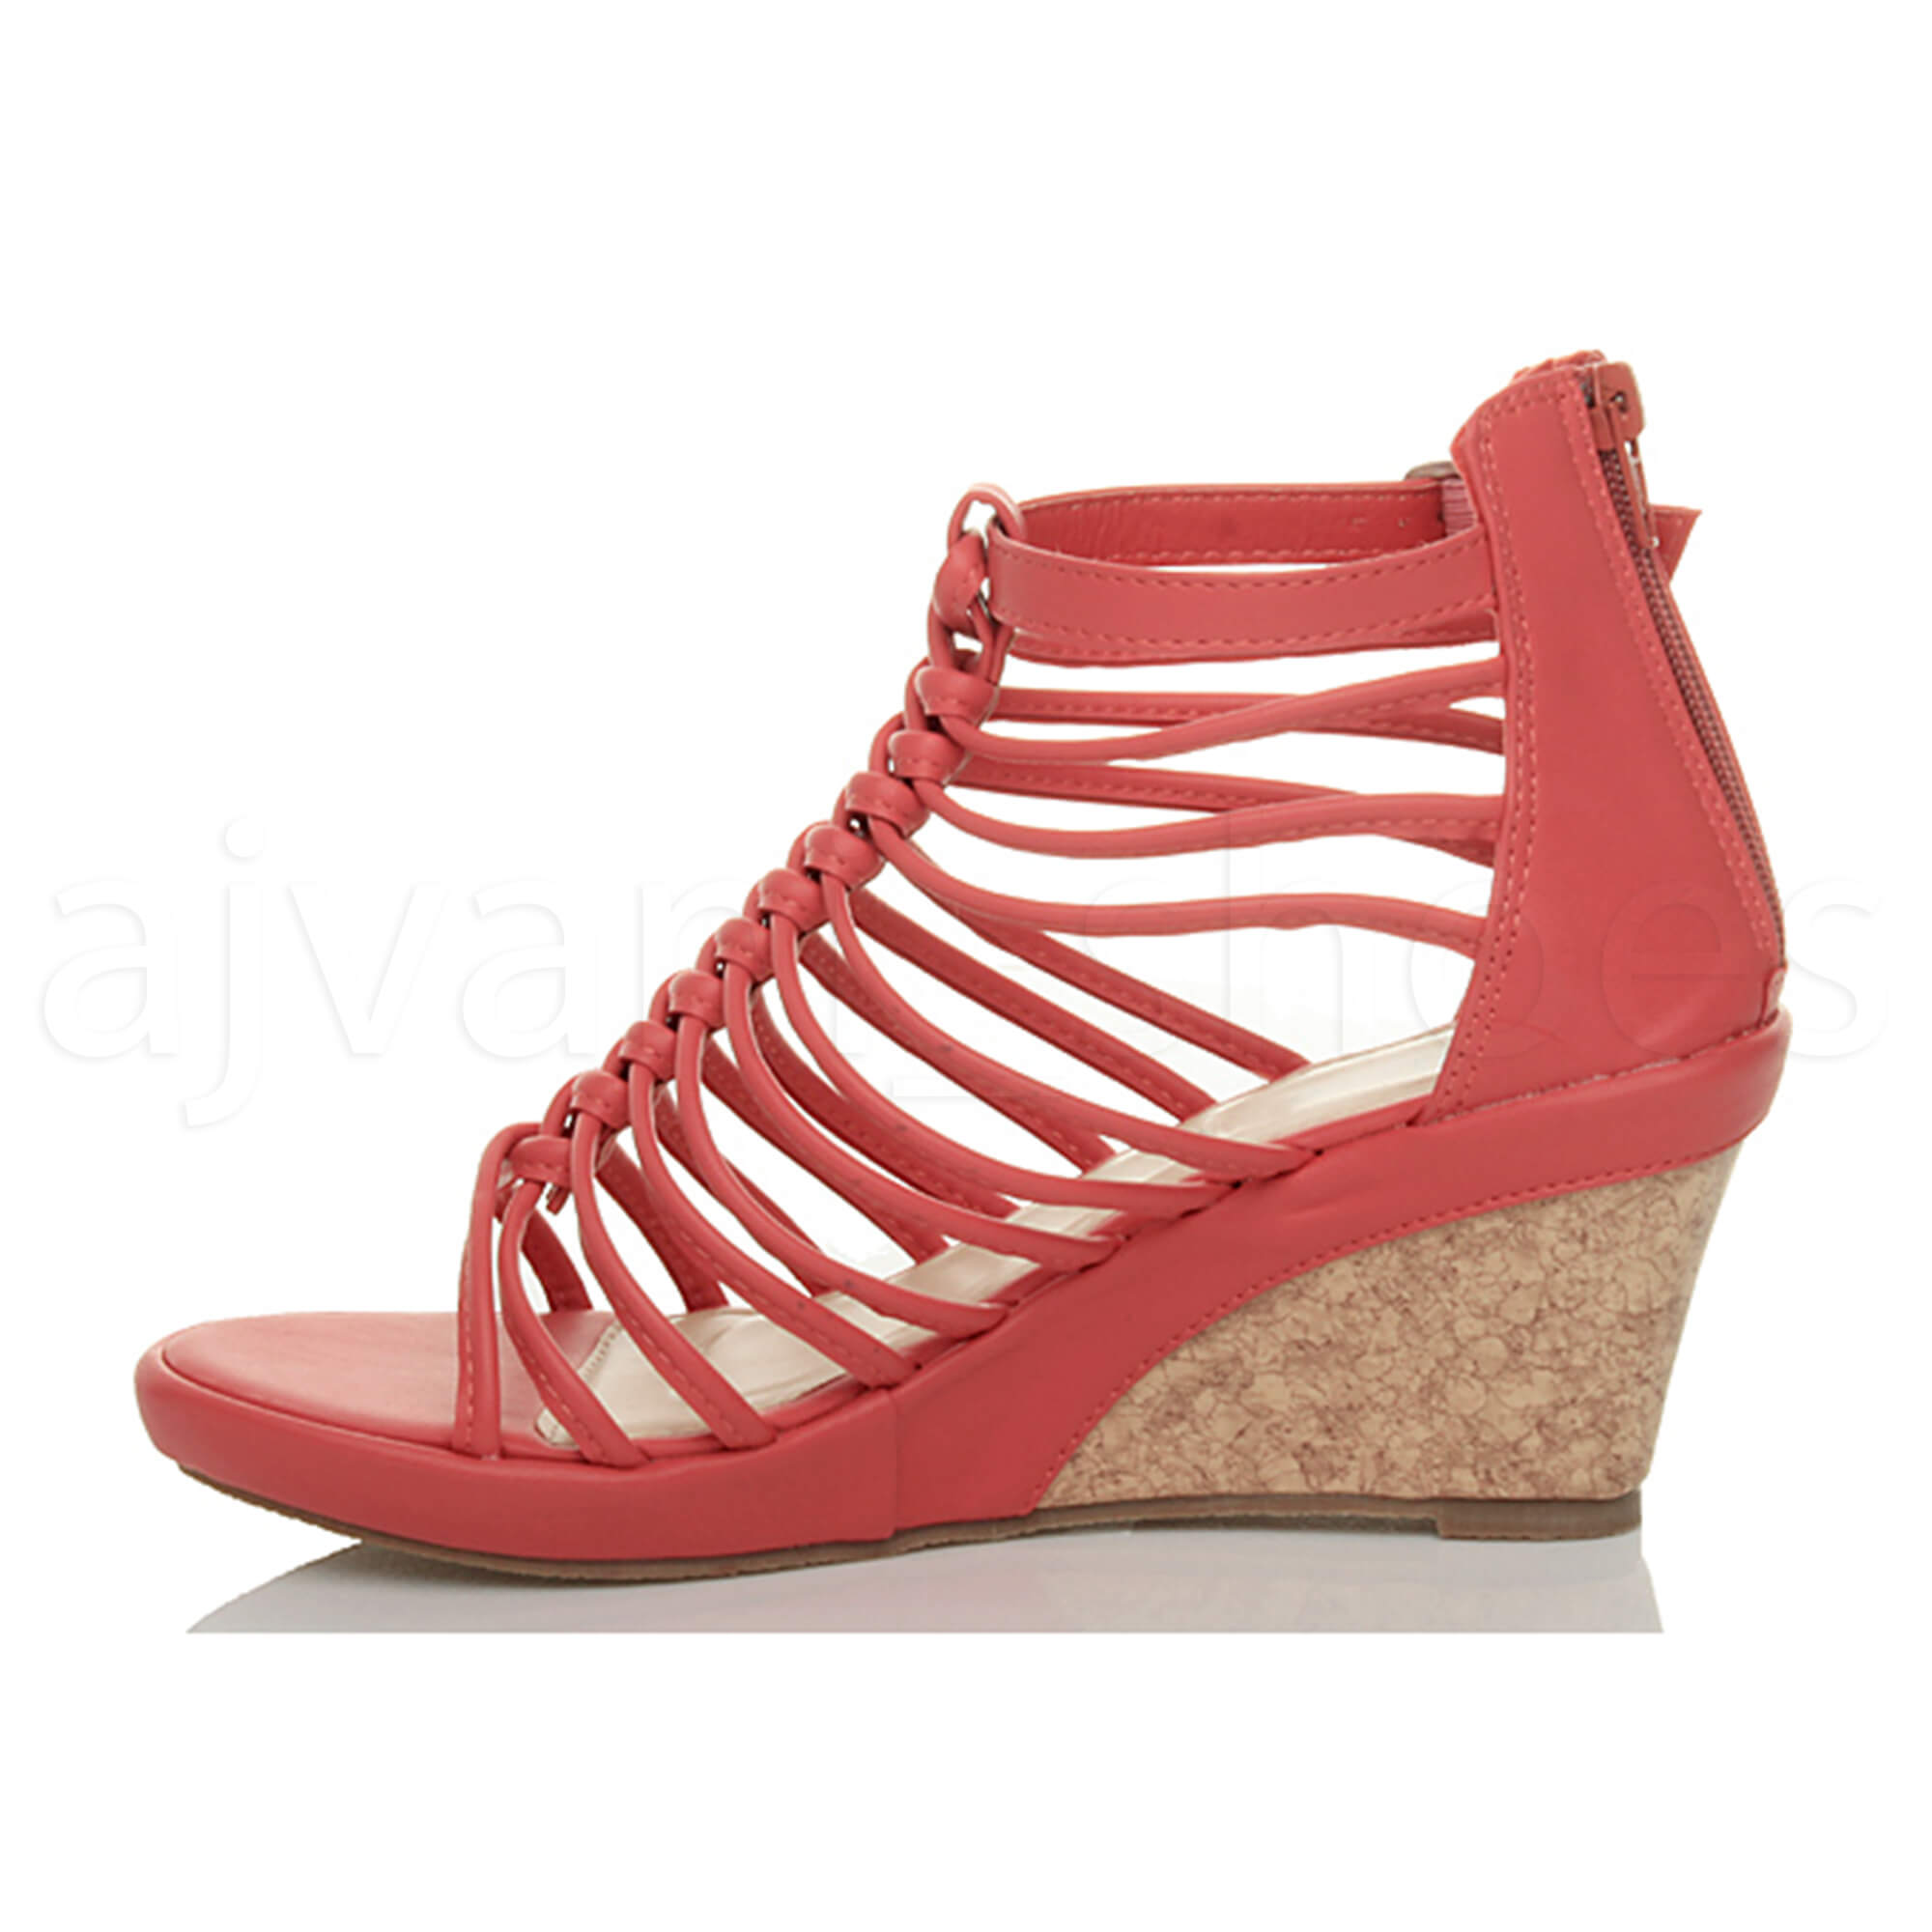 WOMENS-LADIES-STRAPPY-GLADIATOR-PLATFORM-SUMMER-HIGH-HEEL-WEDGE-SANDALS-SIZE